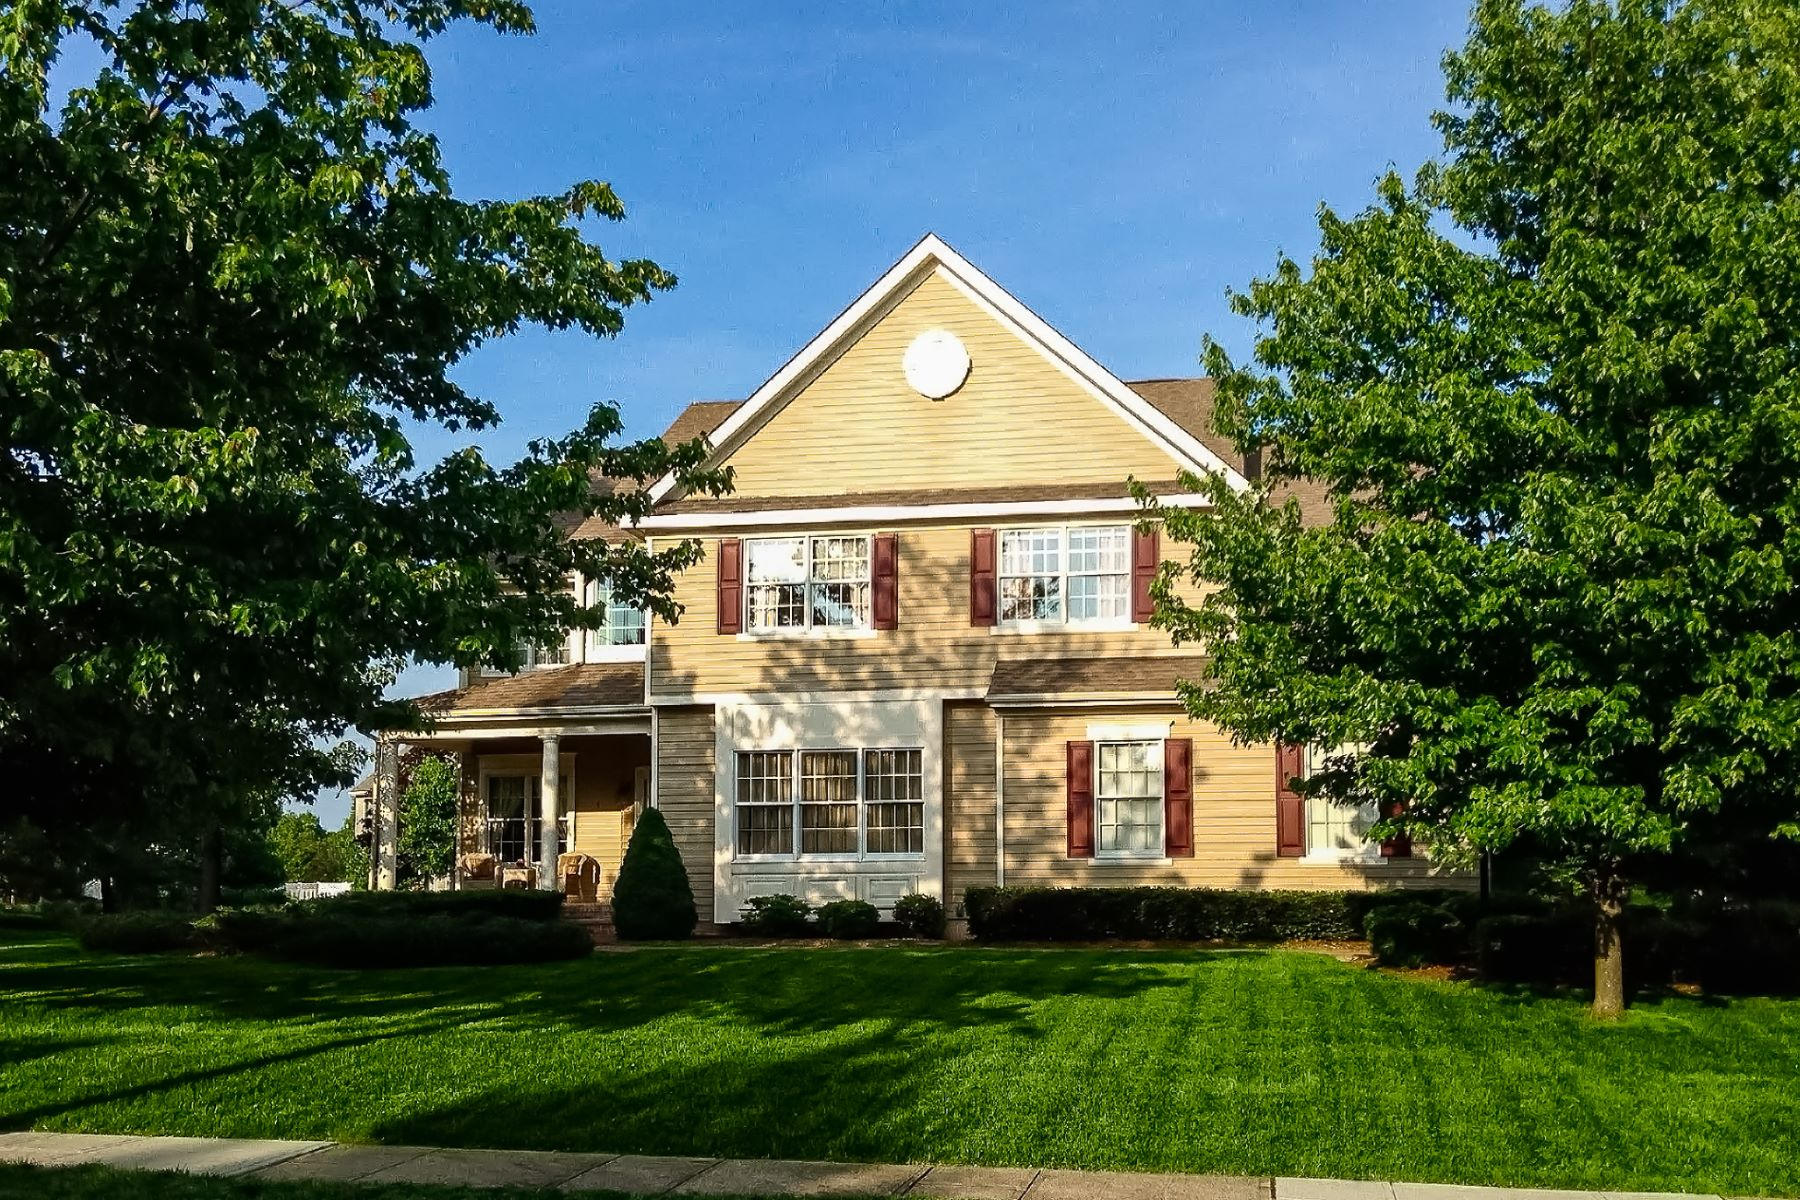 Single Family Homes for Active at Live Every Single Day in Relaxed Luxury! 3 Arrowhead Court Skillman, New Jersey 08558 United States